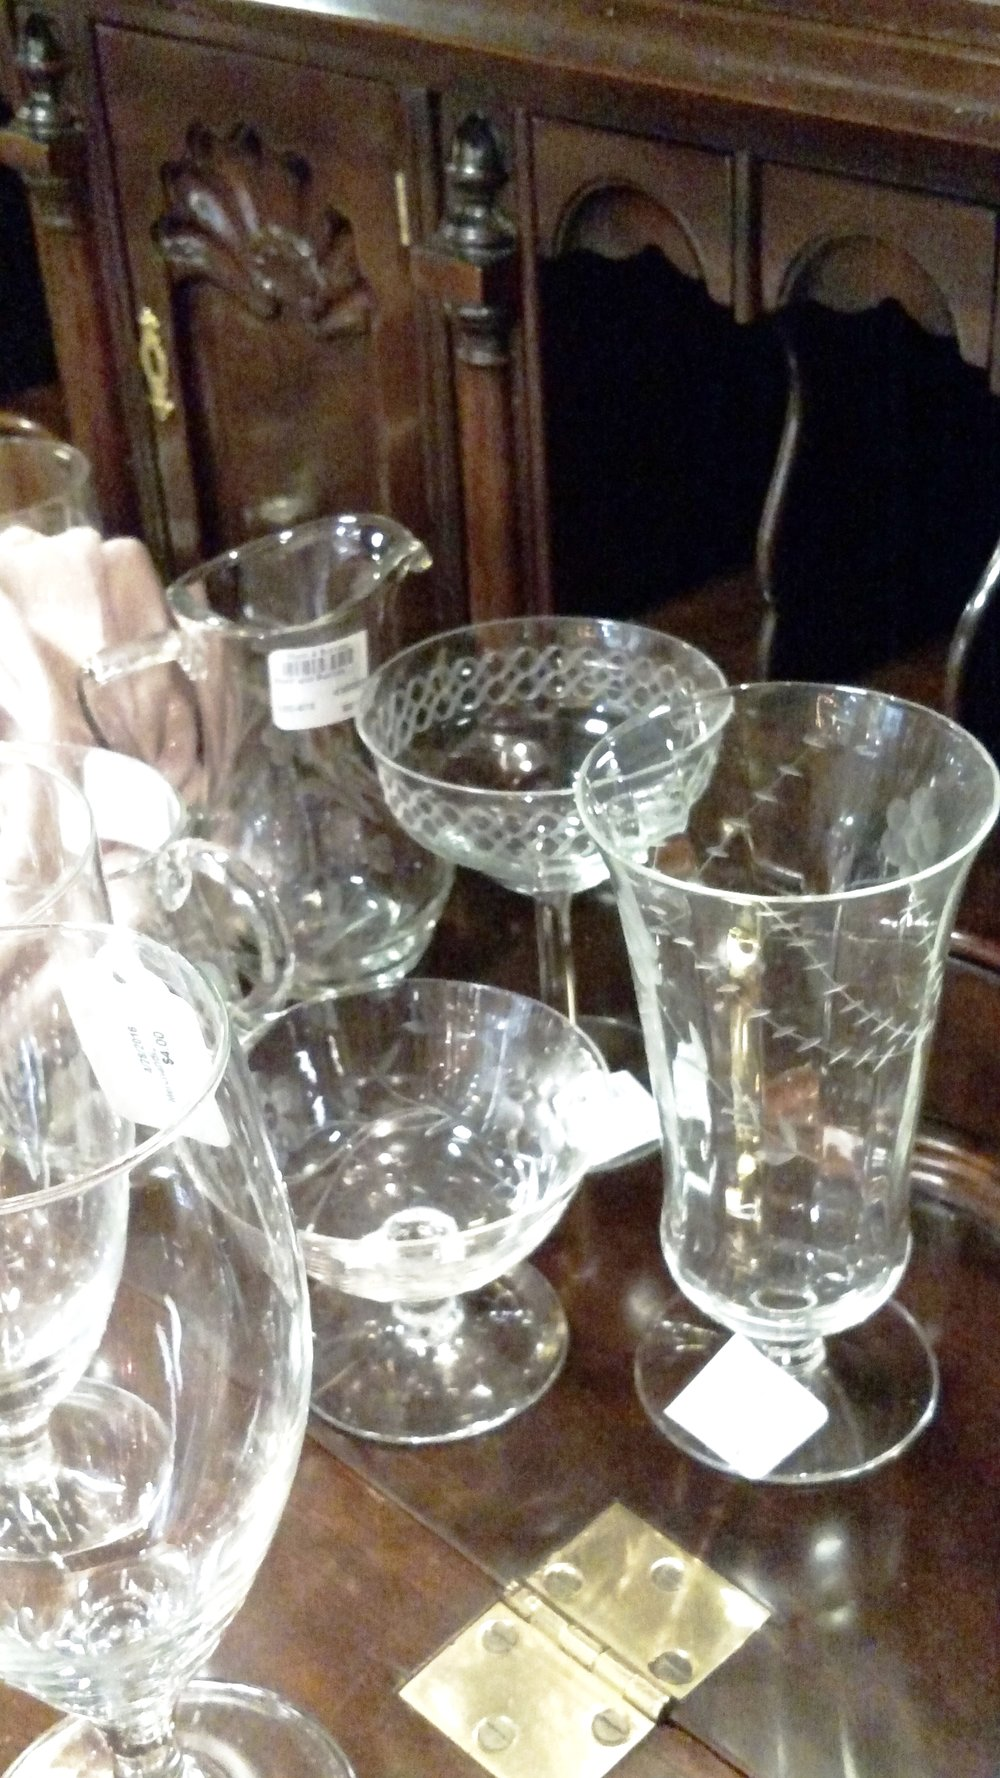 Sparkling Crystal Glassware to Set the Perfect Table or Accent a Bar Cart